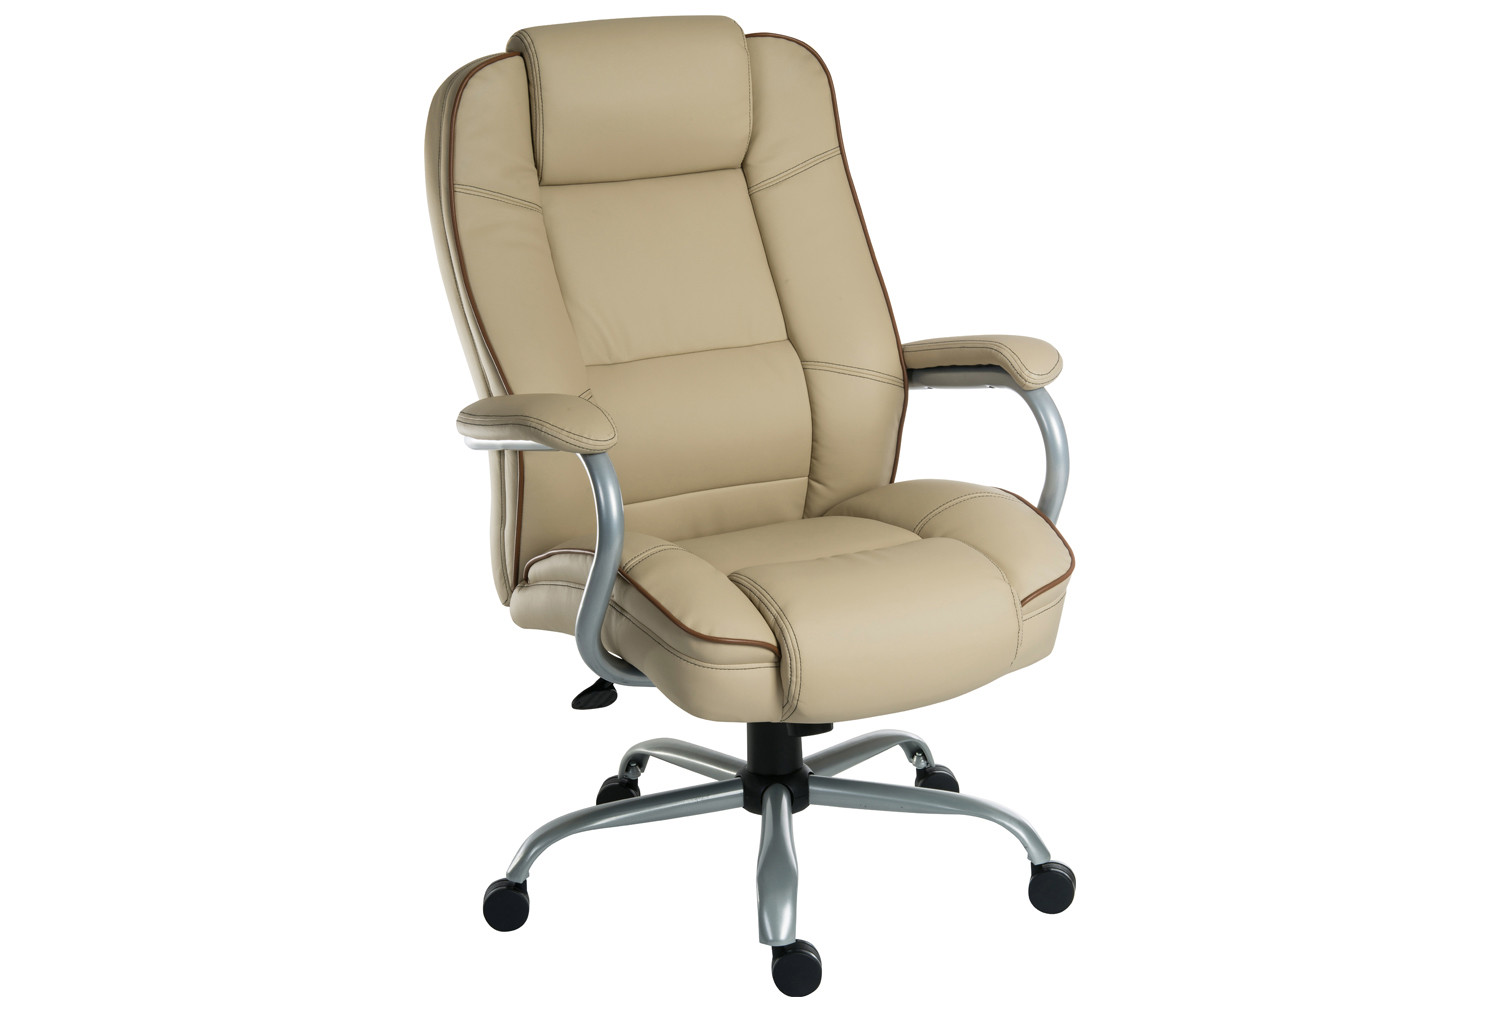 Next-Day Colossal Duo Executive Cream Leather Chair